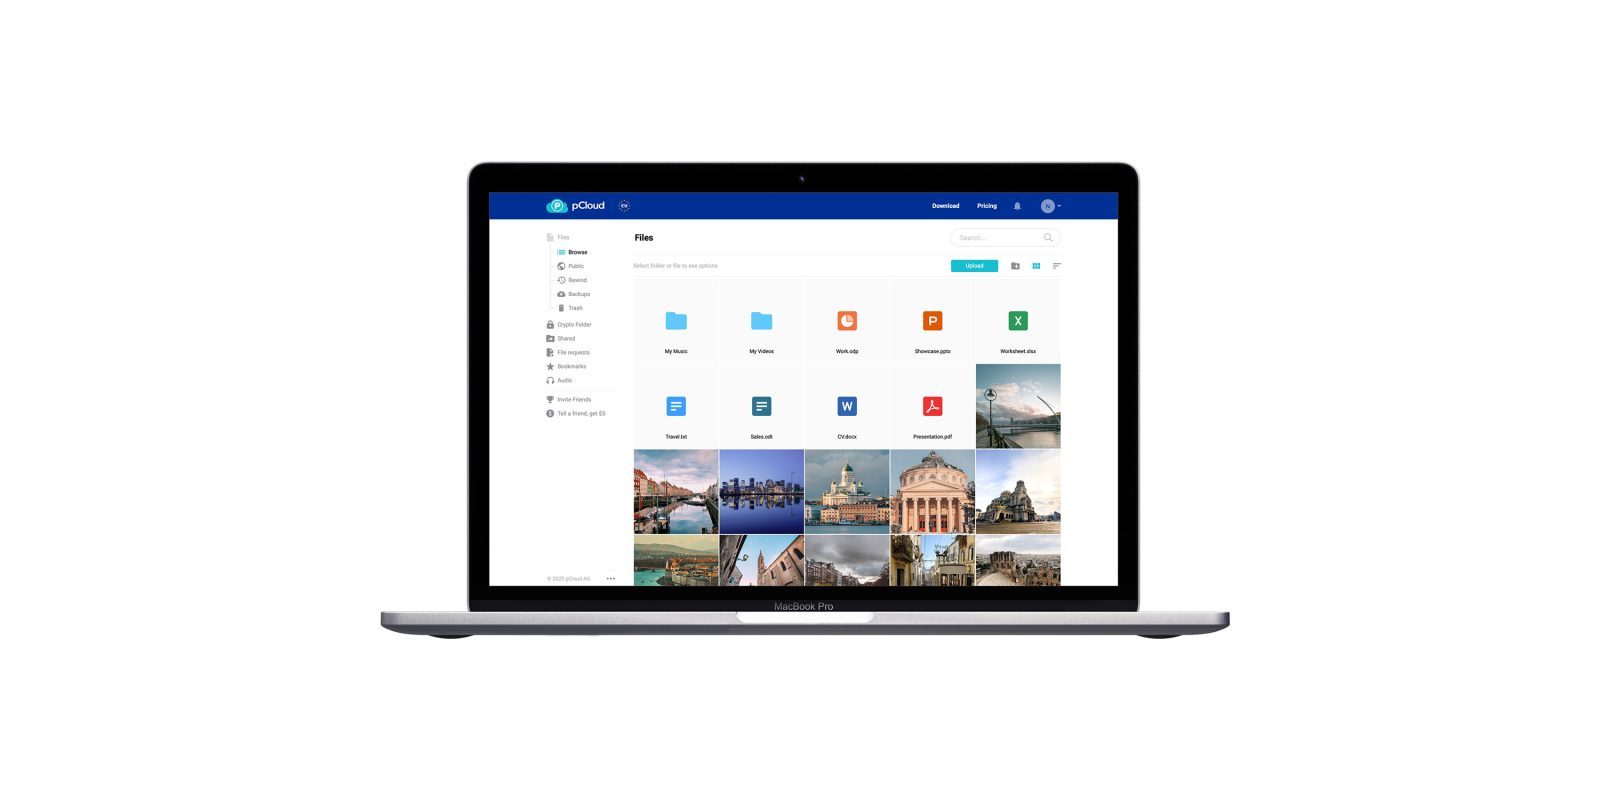 Never pay for Mac cloud storage again with a lifetime pCloud account (75% off for Black Friday!)